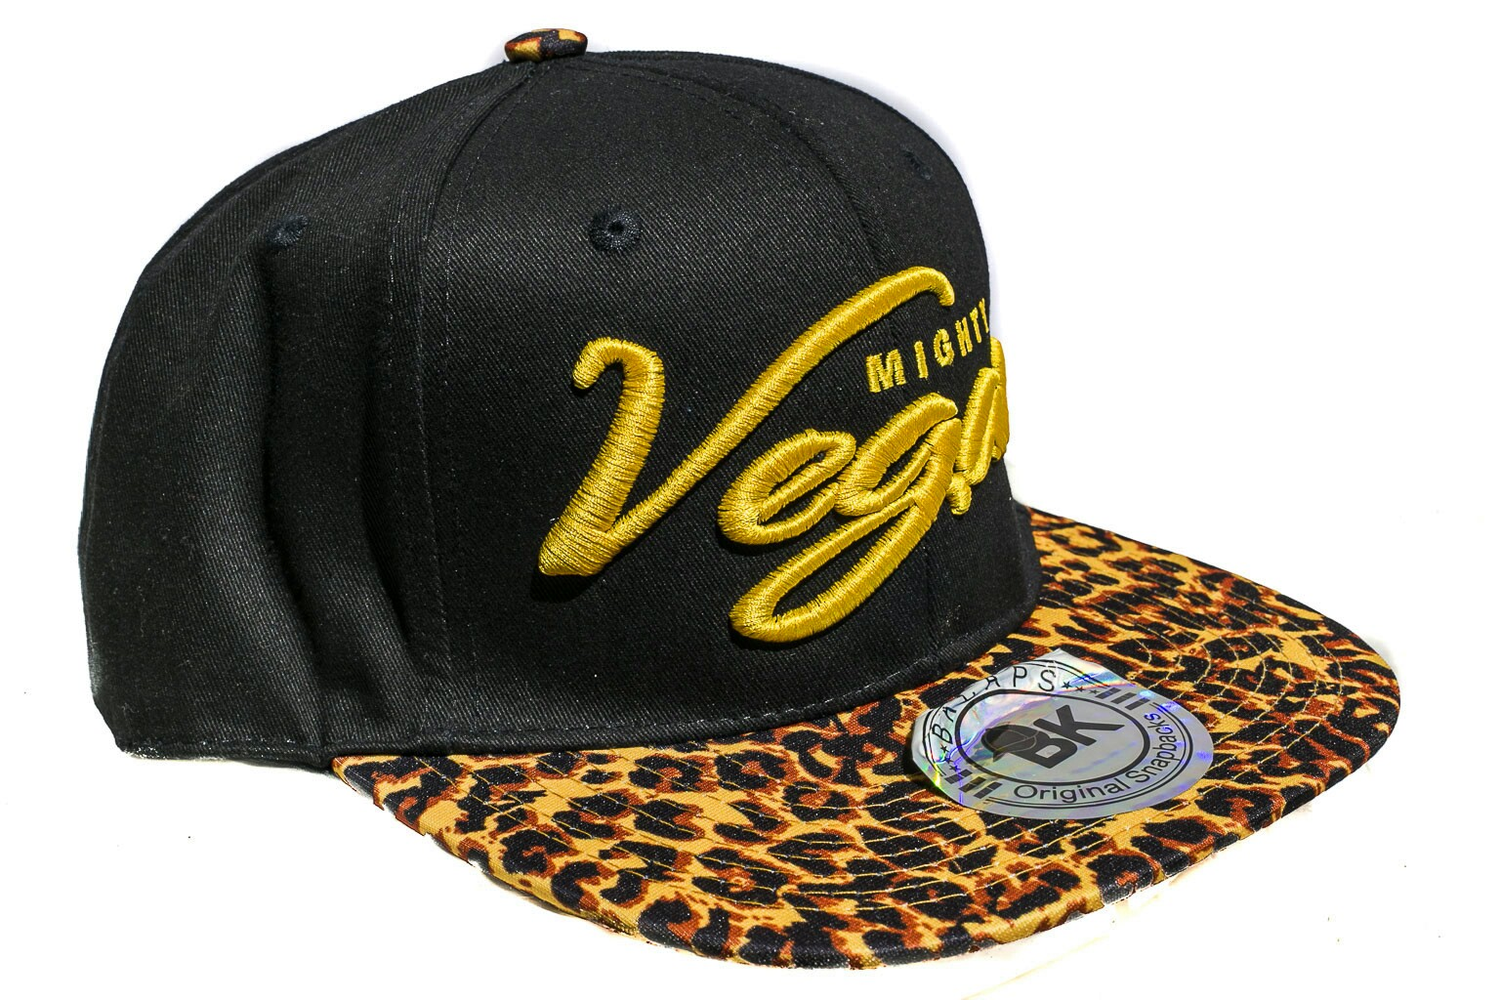 Image of MVA SNAPBACK Cheetah with GOLD 3D EMBROIDERY CURSIVE